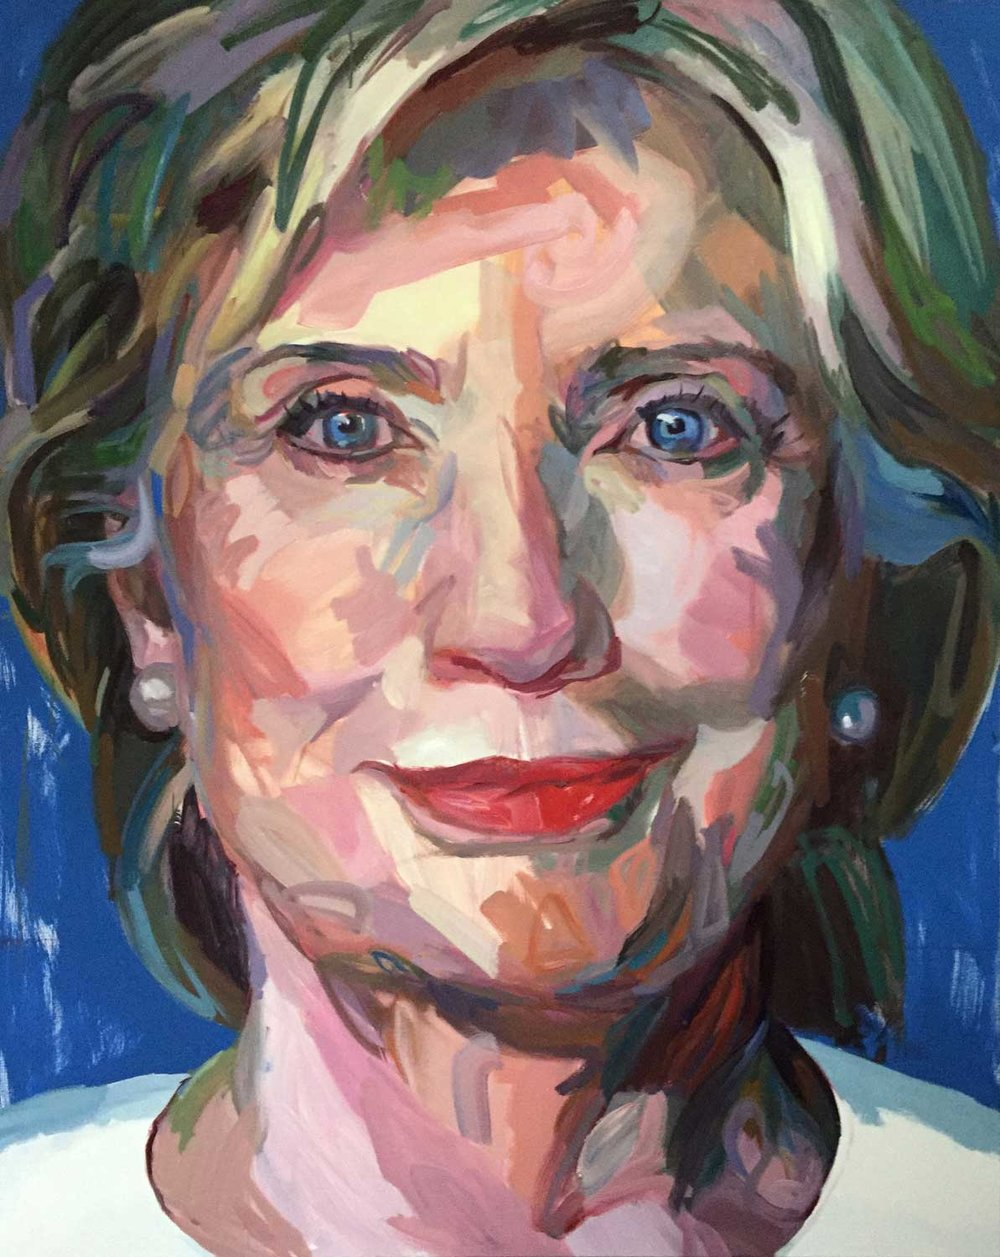 Jo Hay, Hillary 2016 Oil on canvas 48x60""